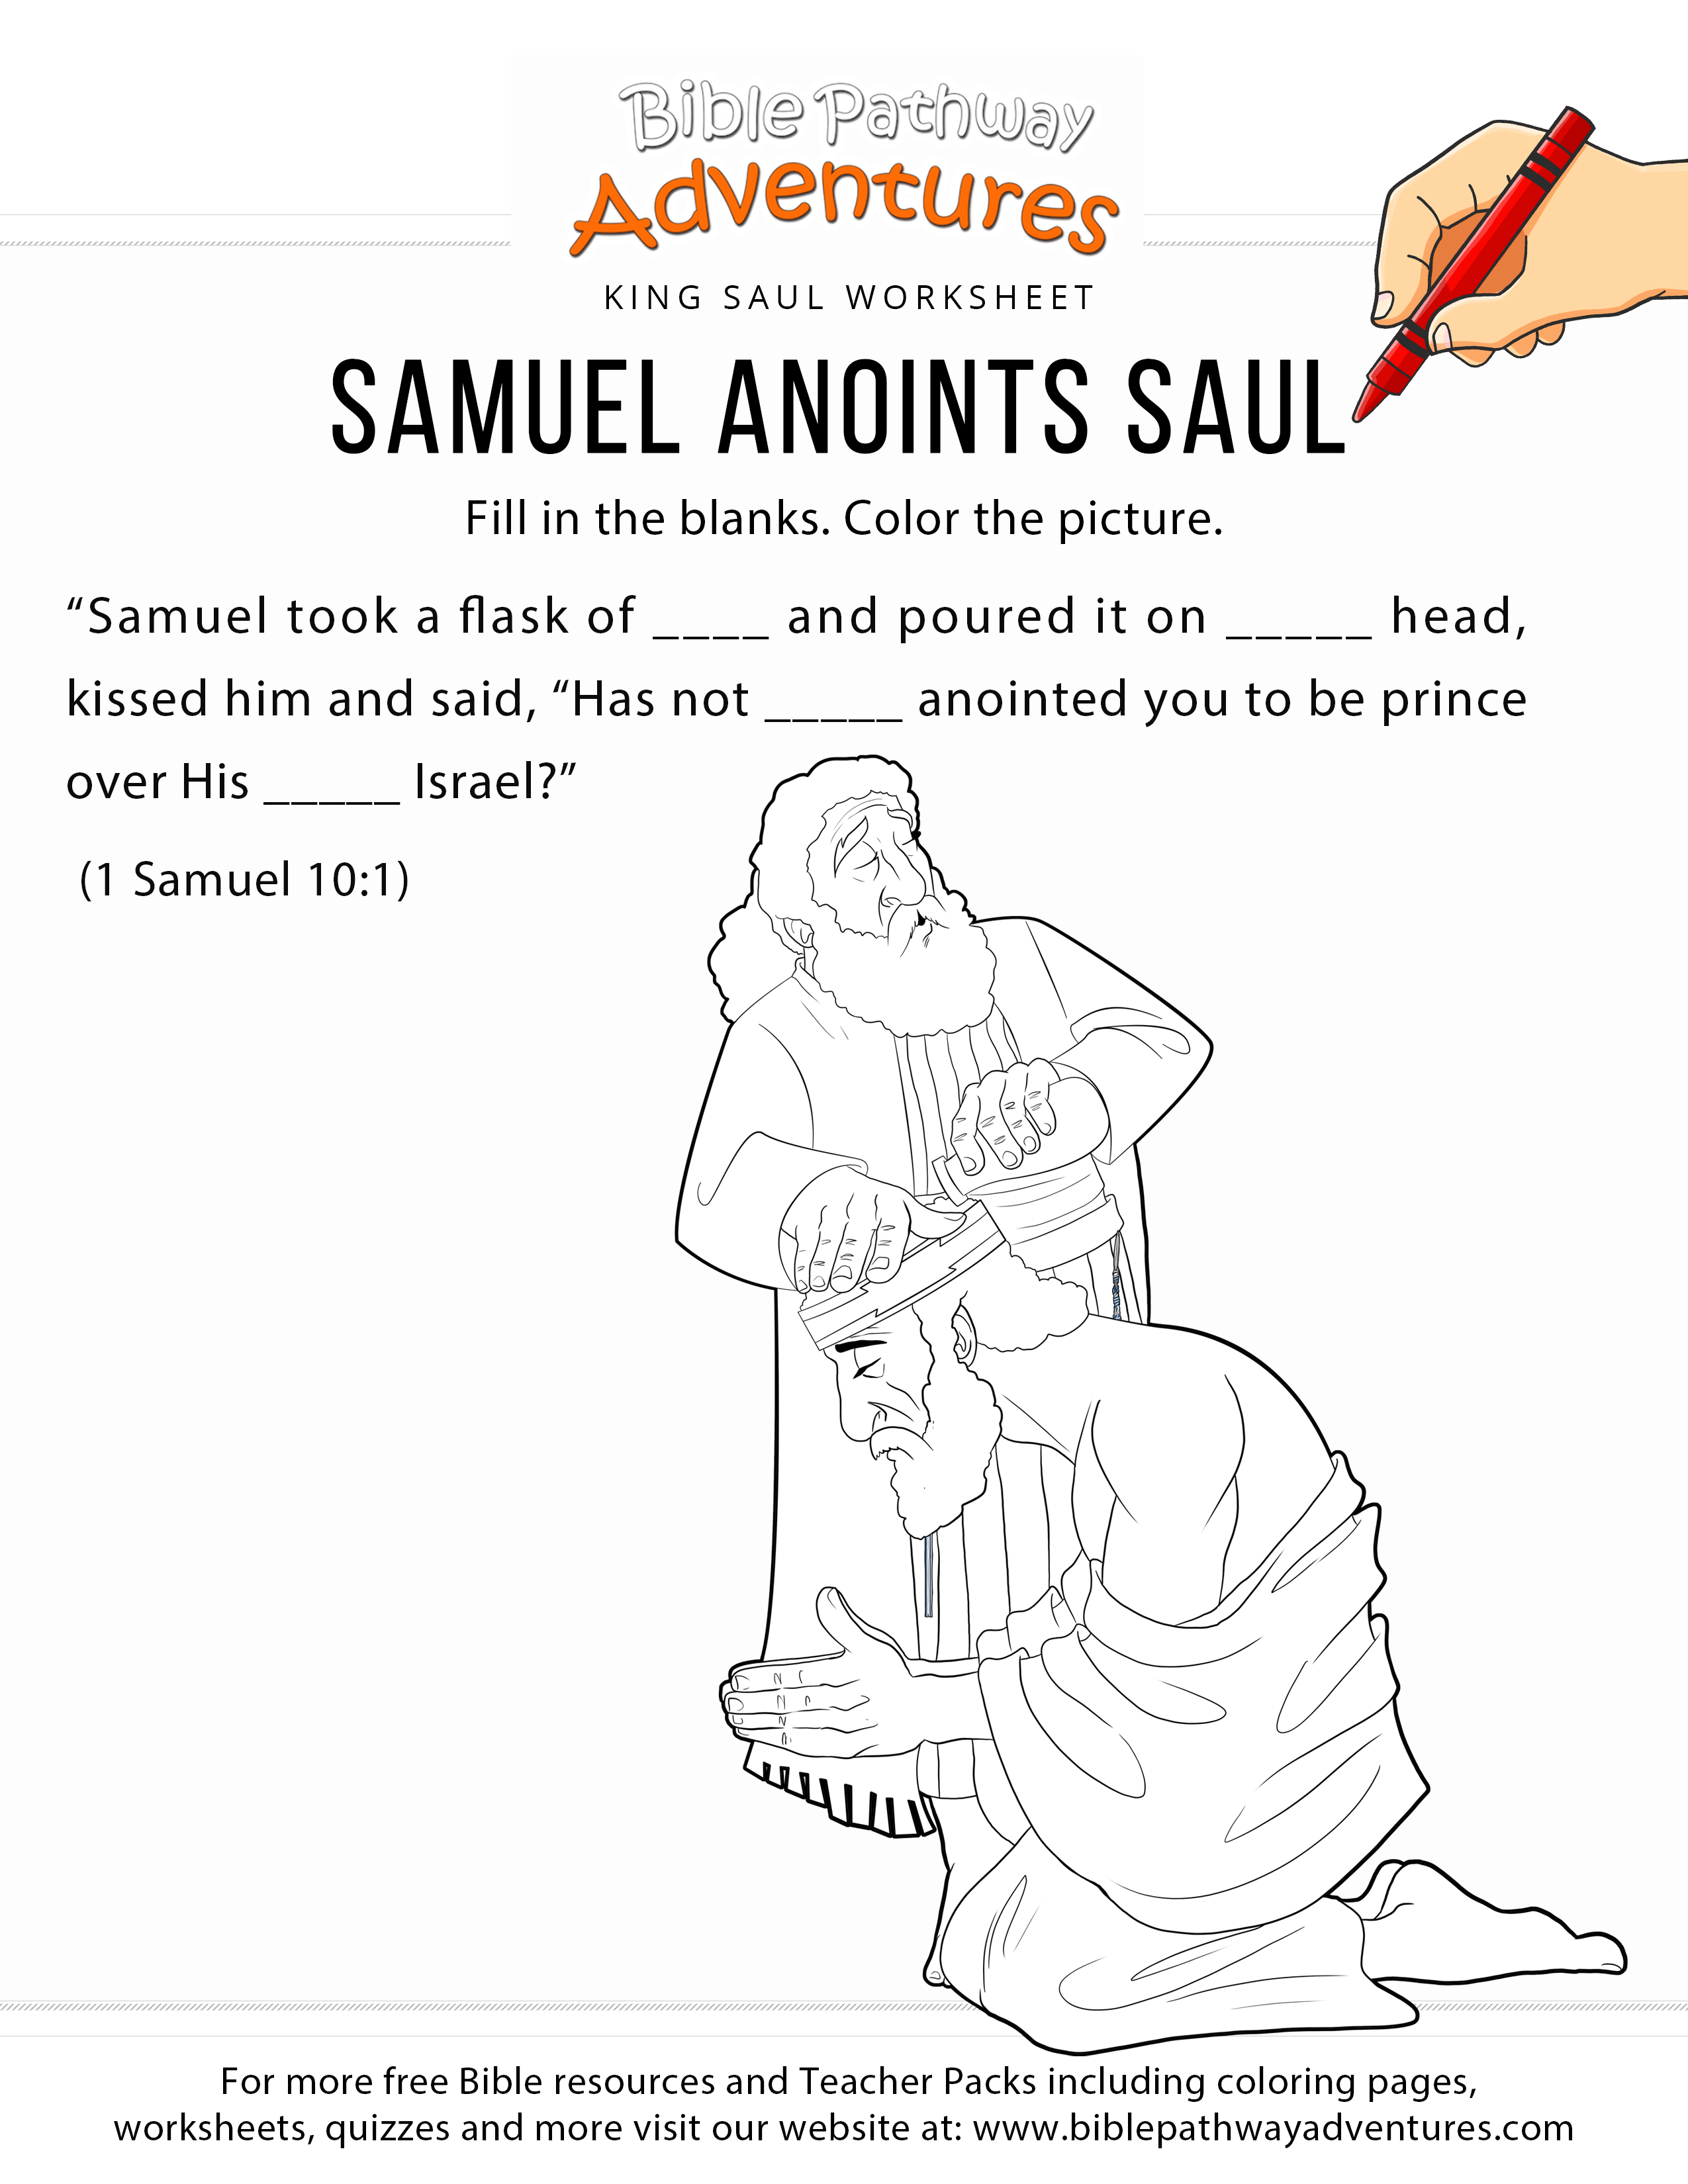 Samuel anoints saul bible worksheet and coloring page printable king saul lesson for homeschoolers sunday school and sabbath school students